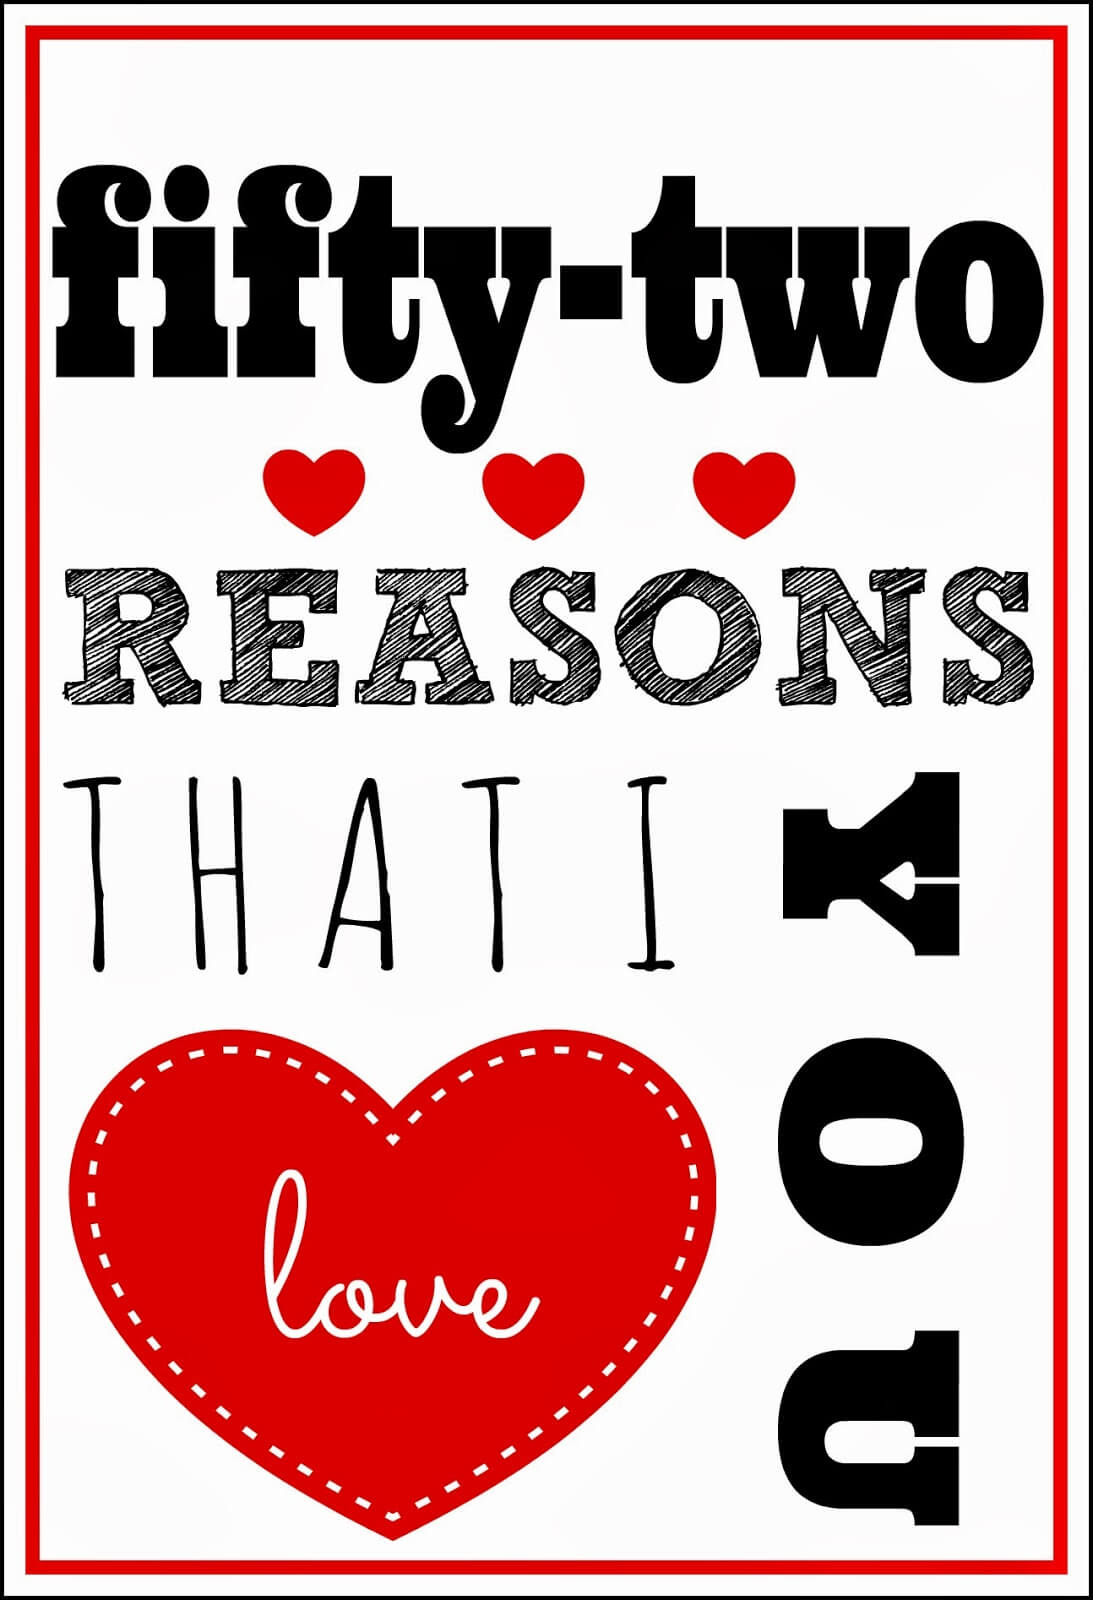 52 Reasons I Love You Template Free ] - You Will Get A With 52 Reasons Why I Love You Cards Templates Free